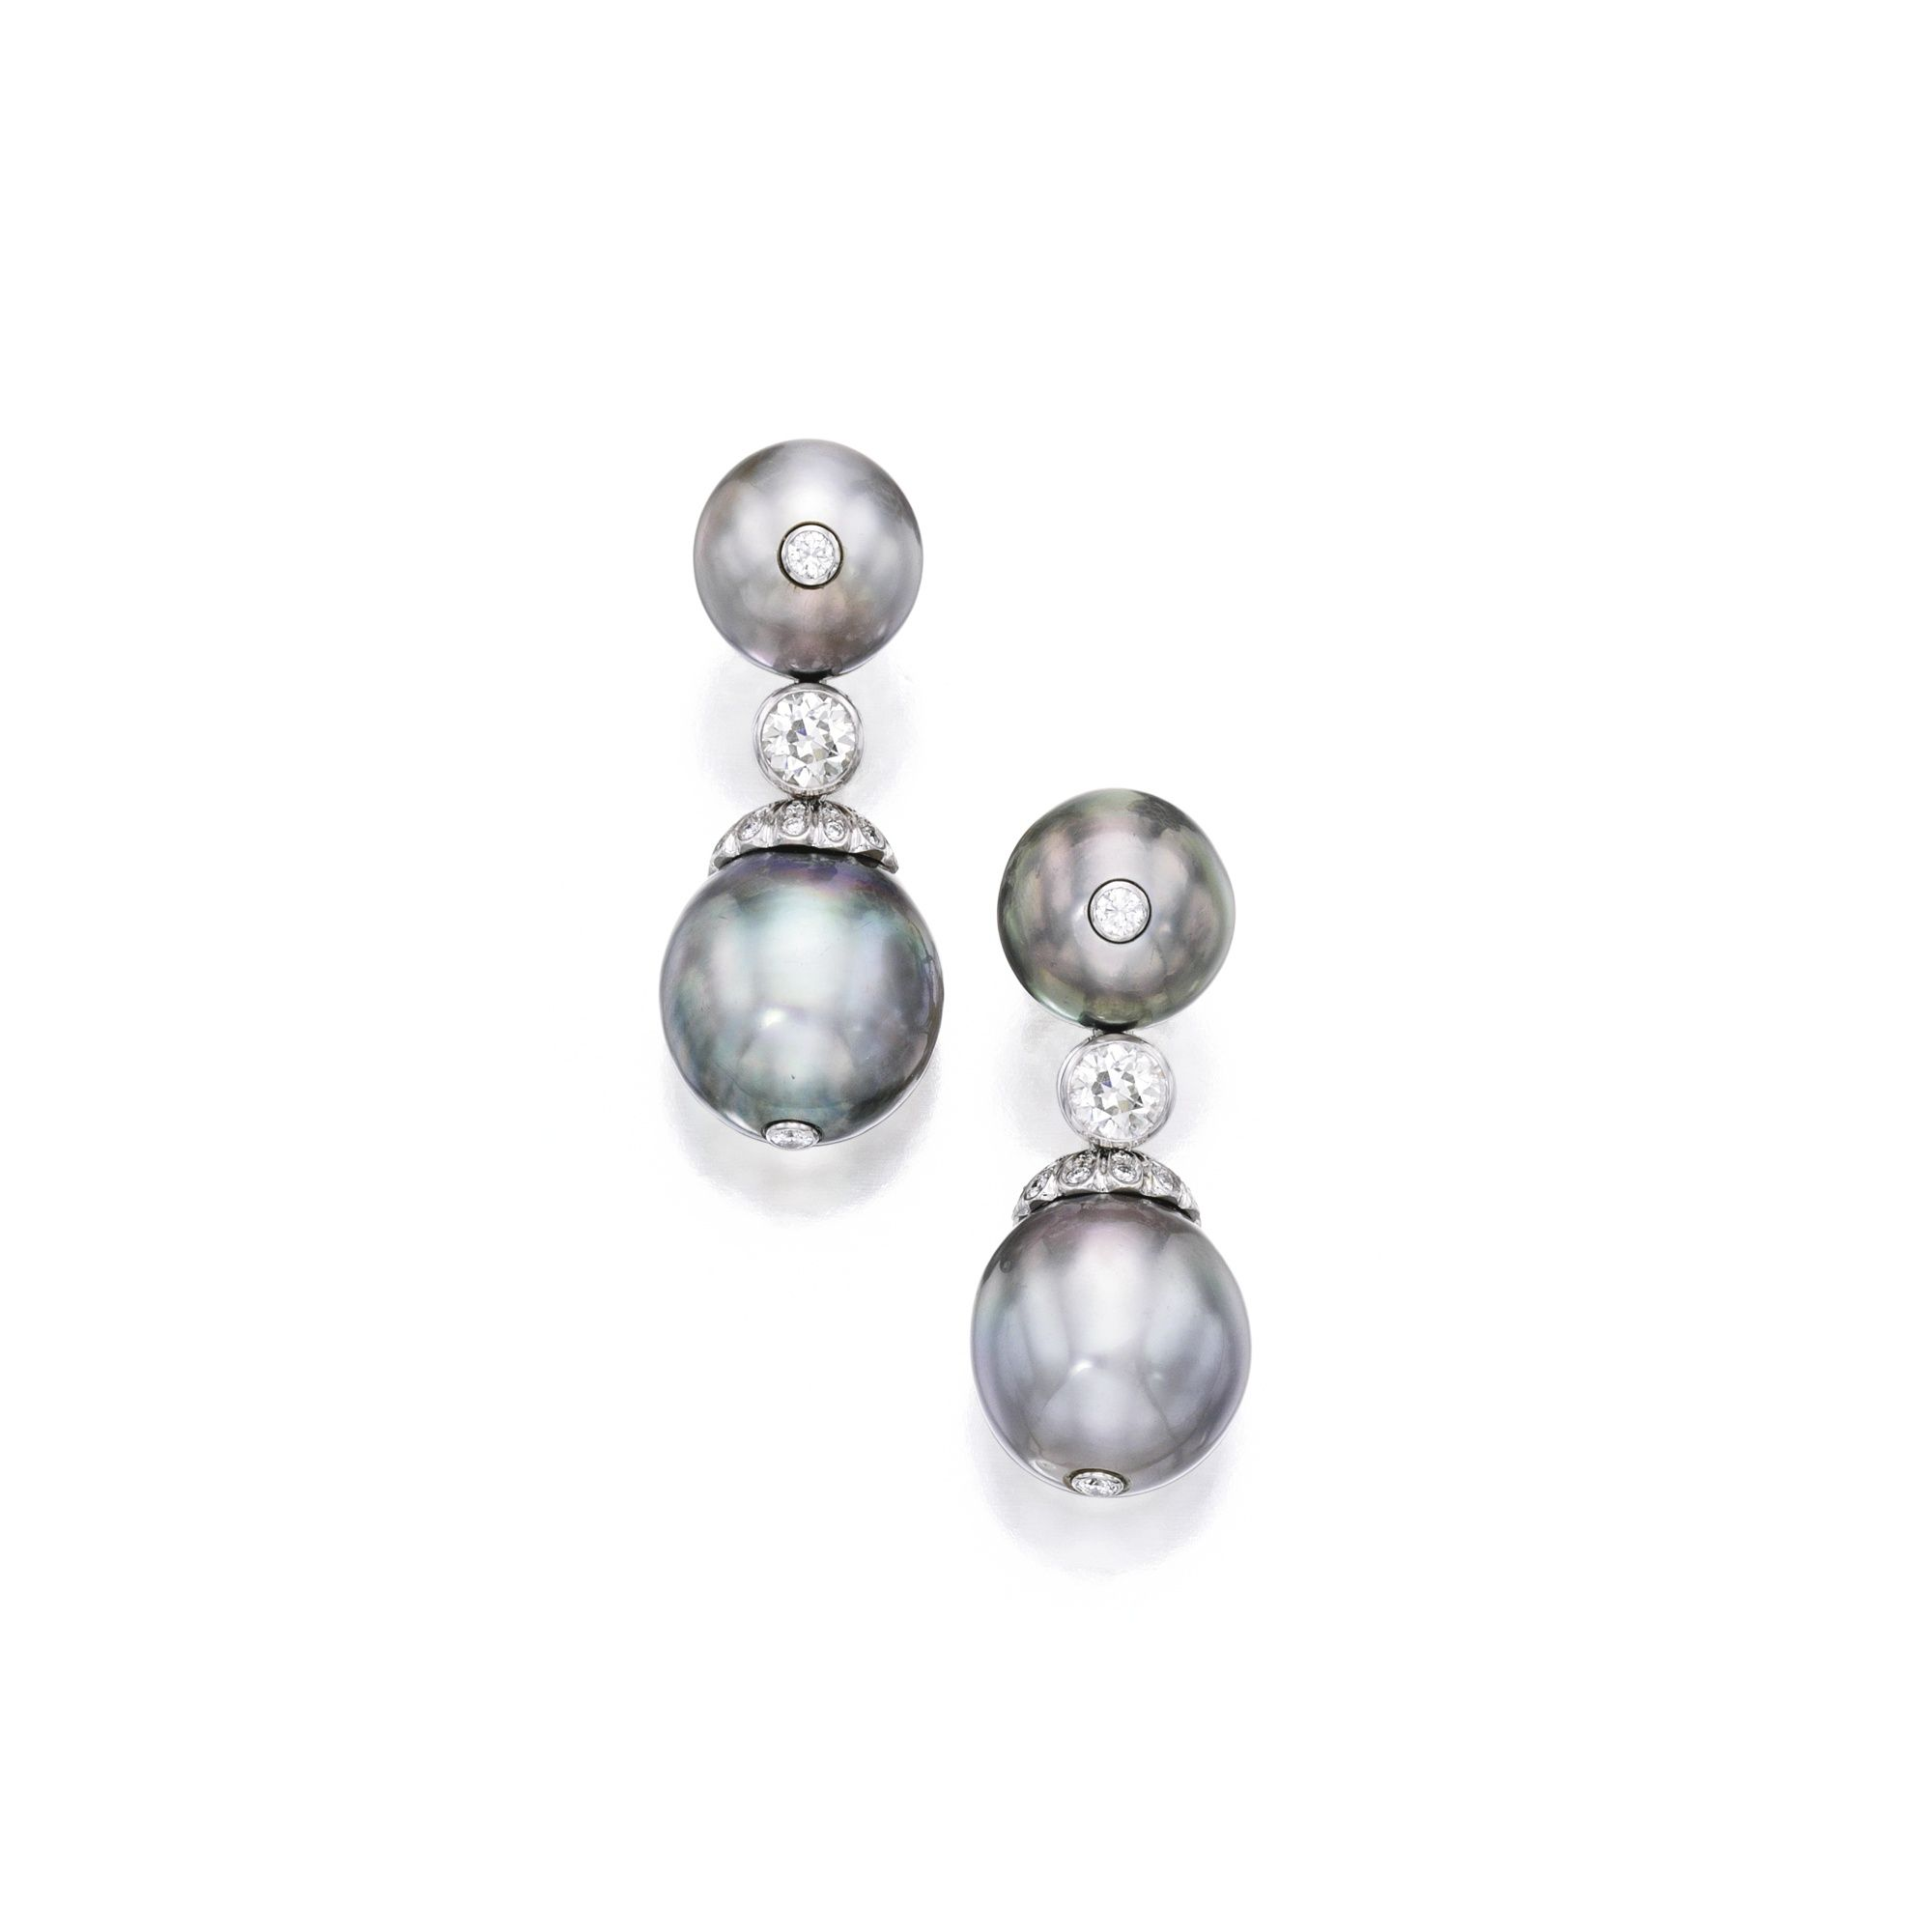 PAIR OF WHITE GOLD, NATURAL COLORED CULTURED PEARL AND DIAMOND PENDANT-EARCLIPS, ESTHER GALLAN